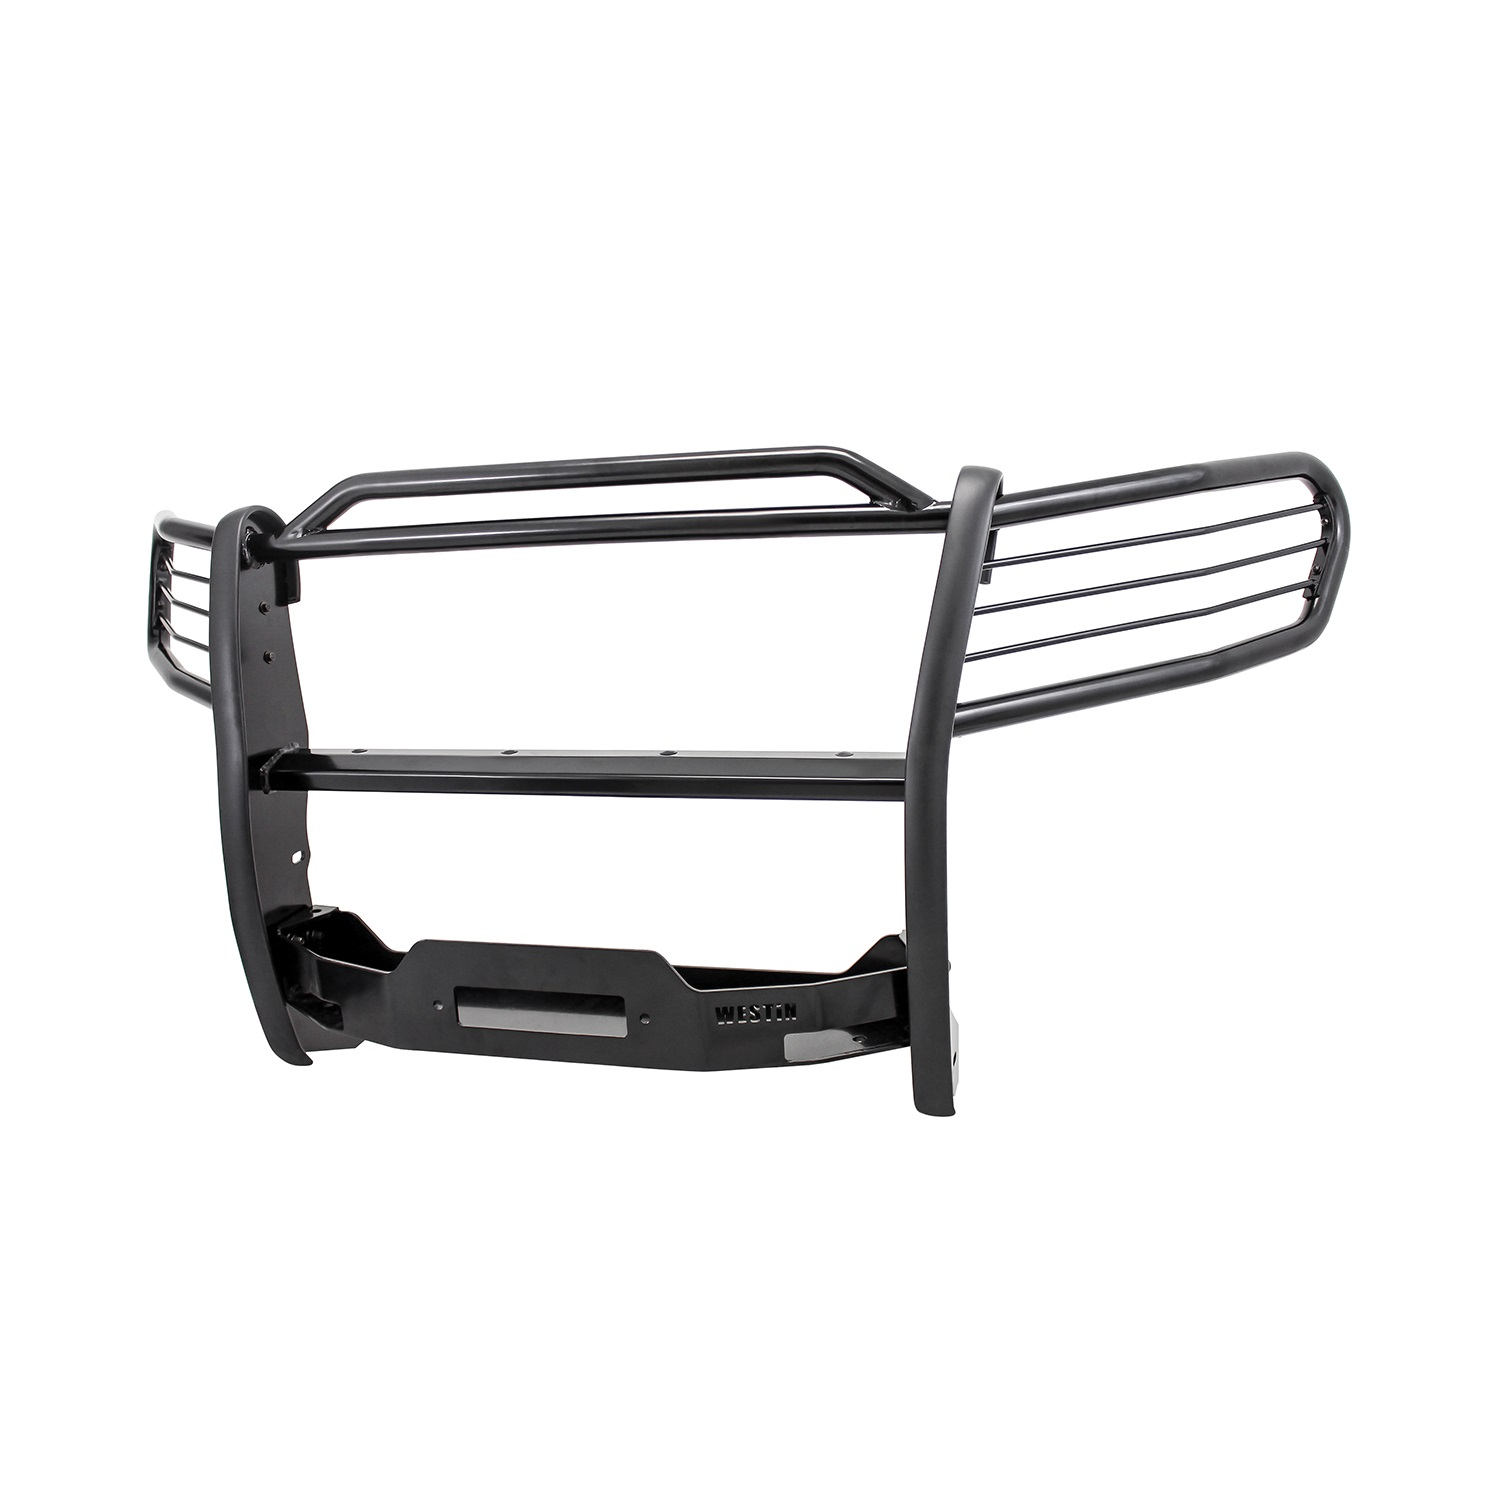 Westin 40 93885 Sportsman Winch Mount Grille Guard Fits 16 18 Tacoma Trailer Coupler Parts Diagram Http Wwwebaycom Itm Freedompivot